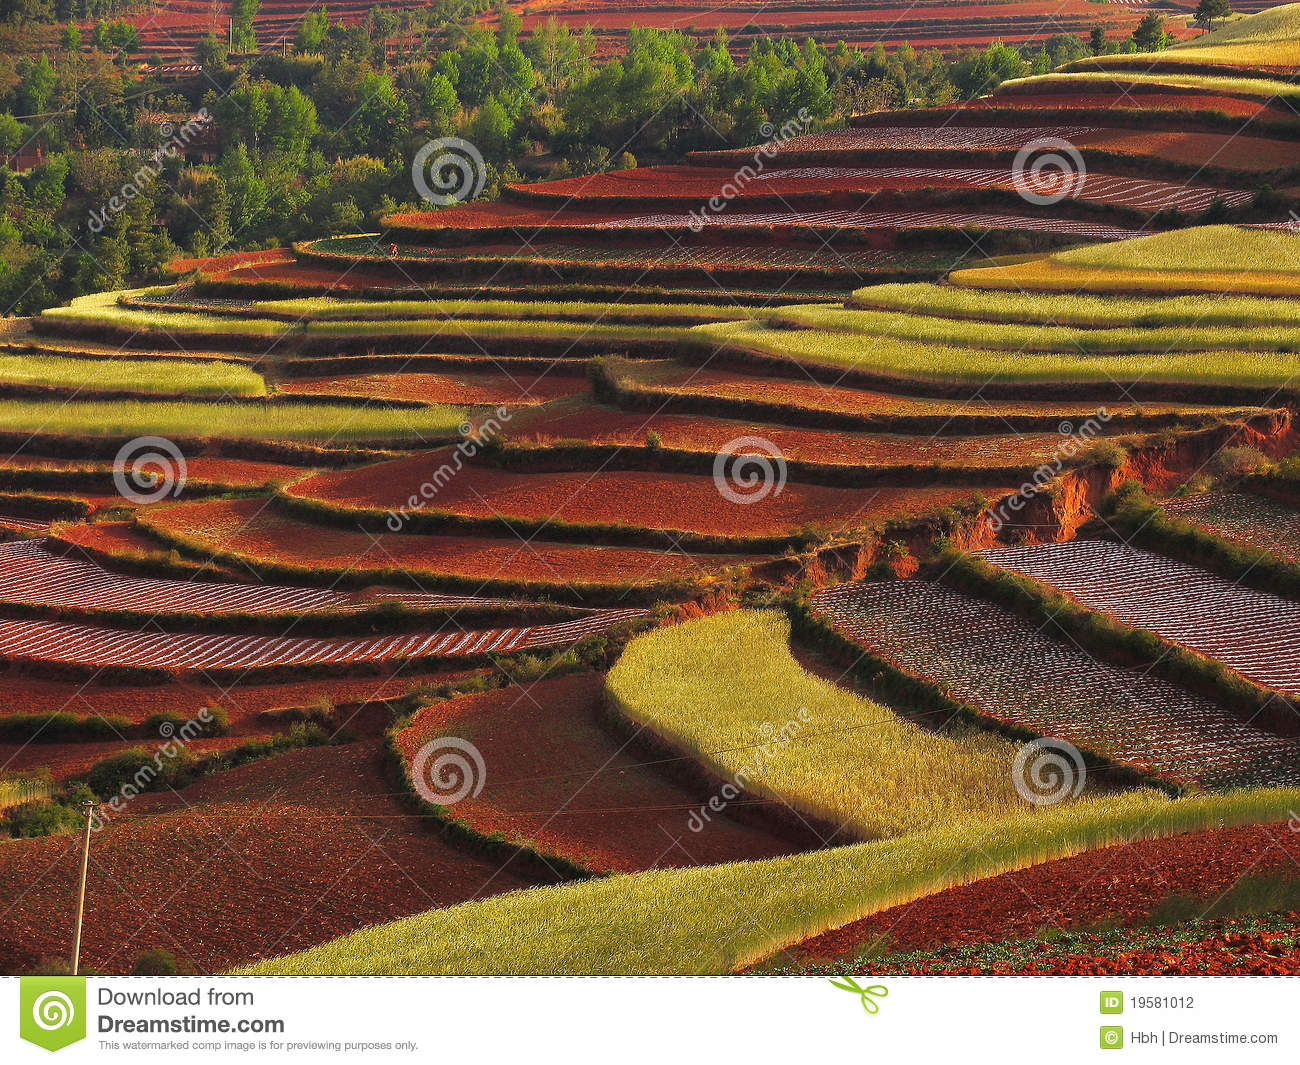 Yunnan red soil dry stock photography image 19581012 for What soil contains